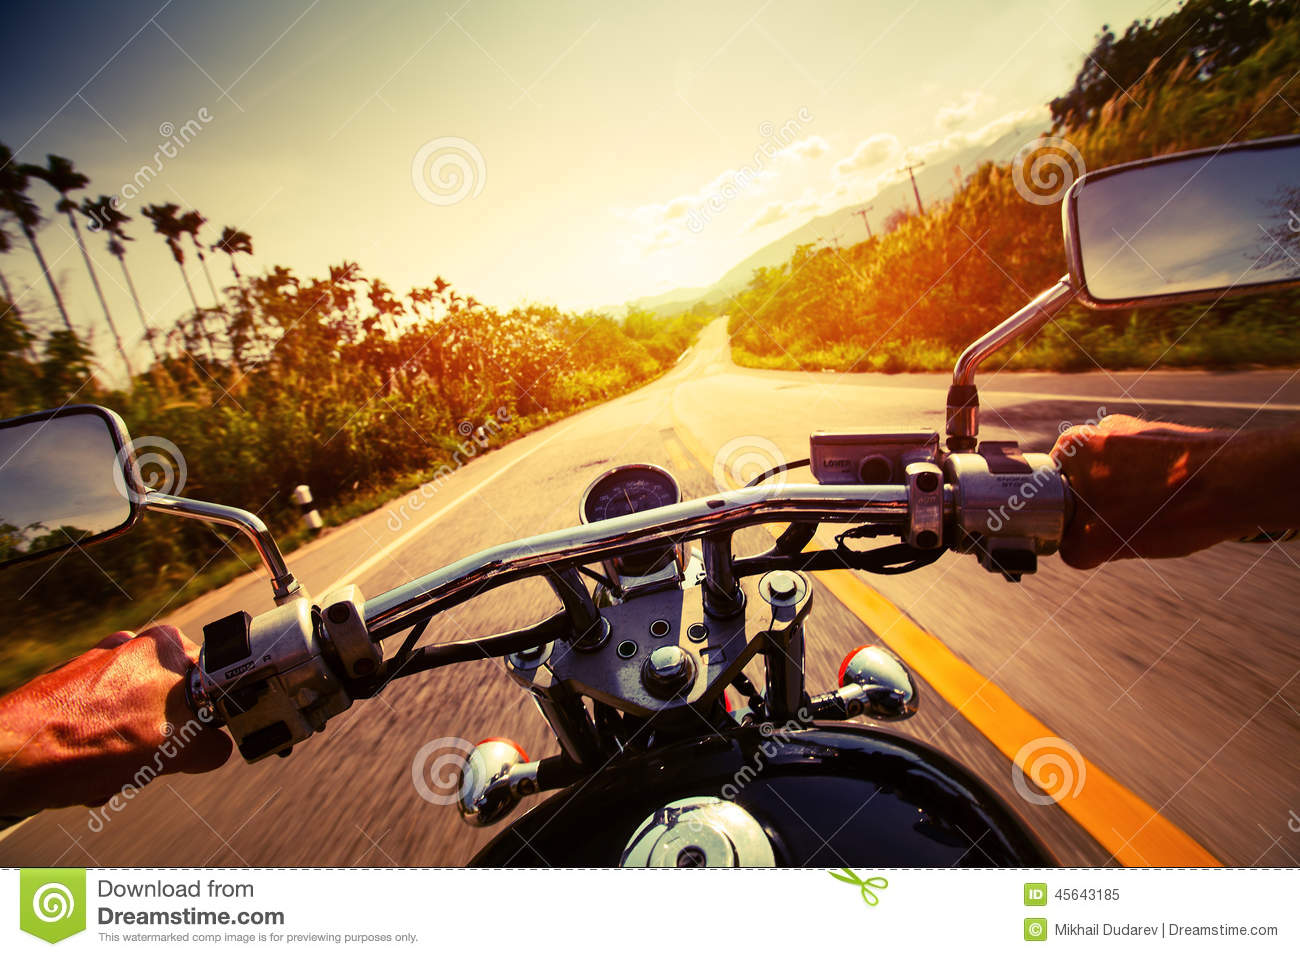 Download Motorcycle stock image. Image of ride, holding, rider - 45643185